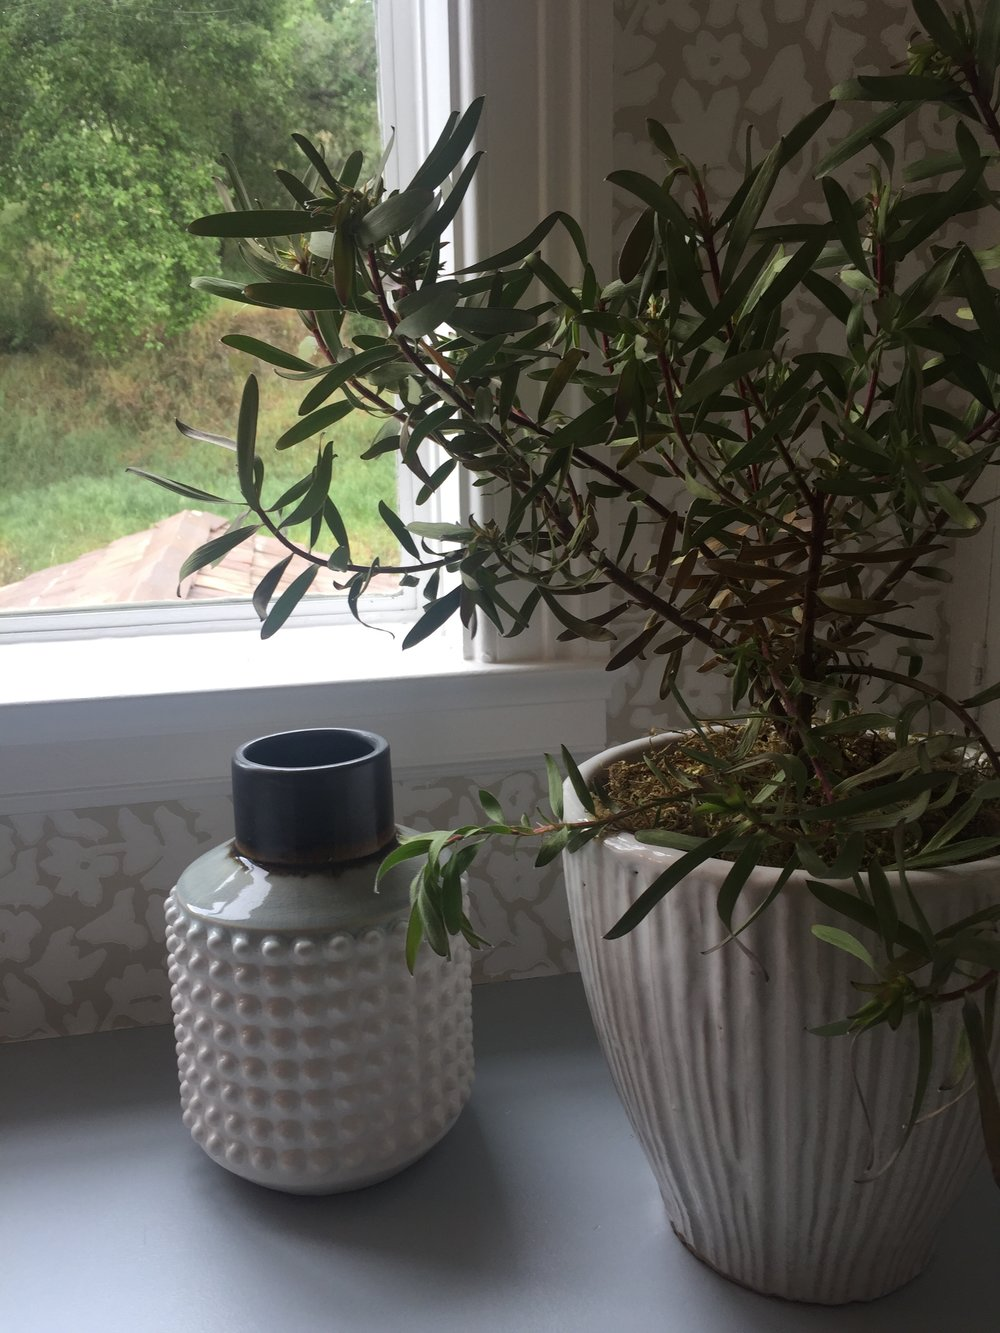 The windowsill hosts a potted plant plant and features a magnificent view of the garden.